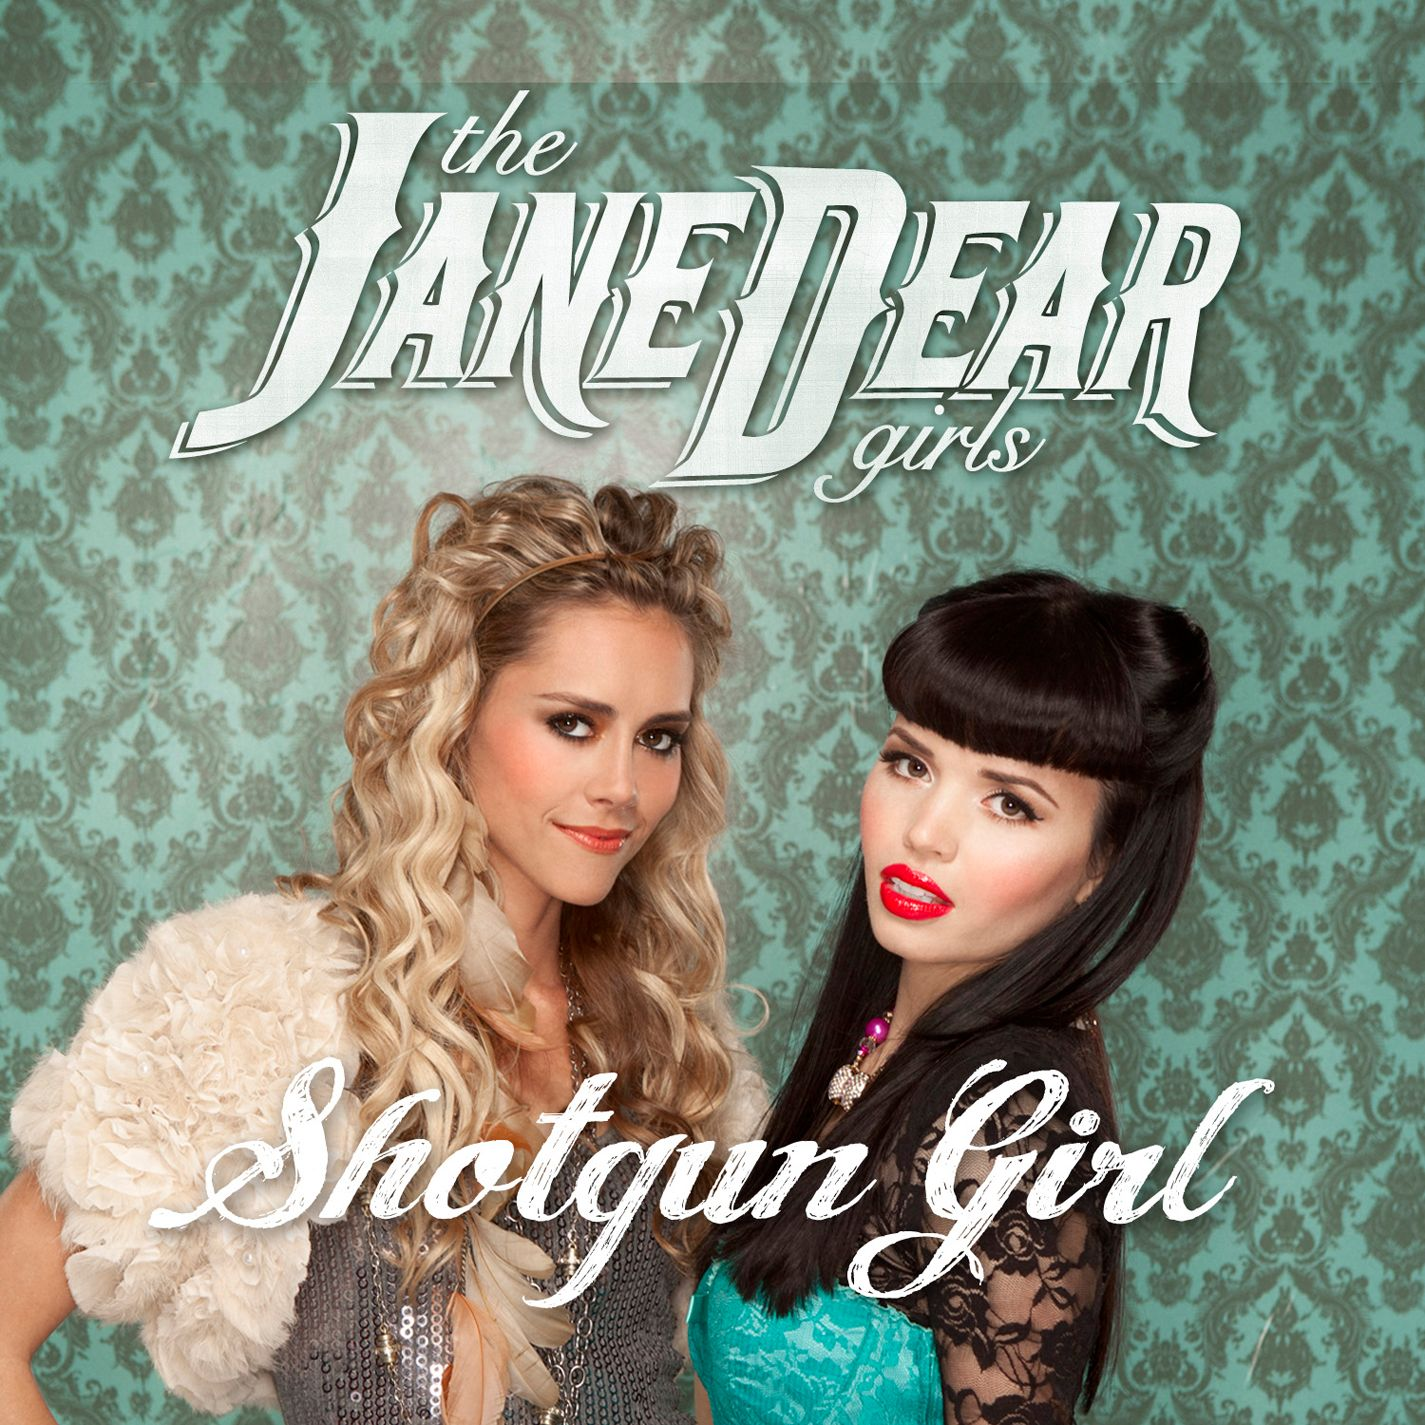 1425x1425 > The JaneDear Girls Wallpapers